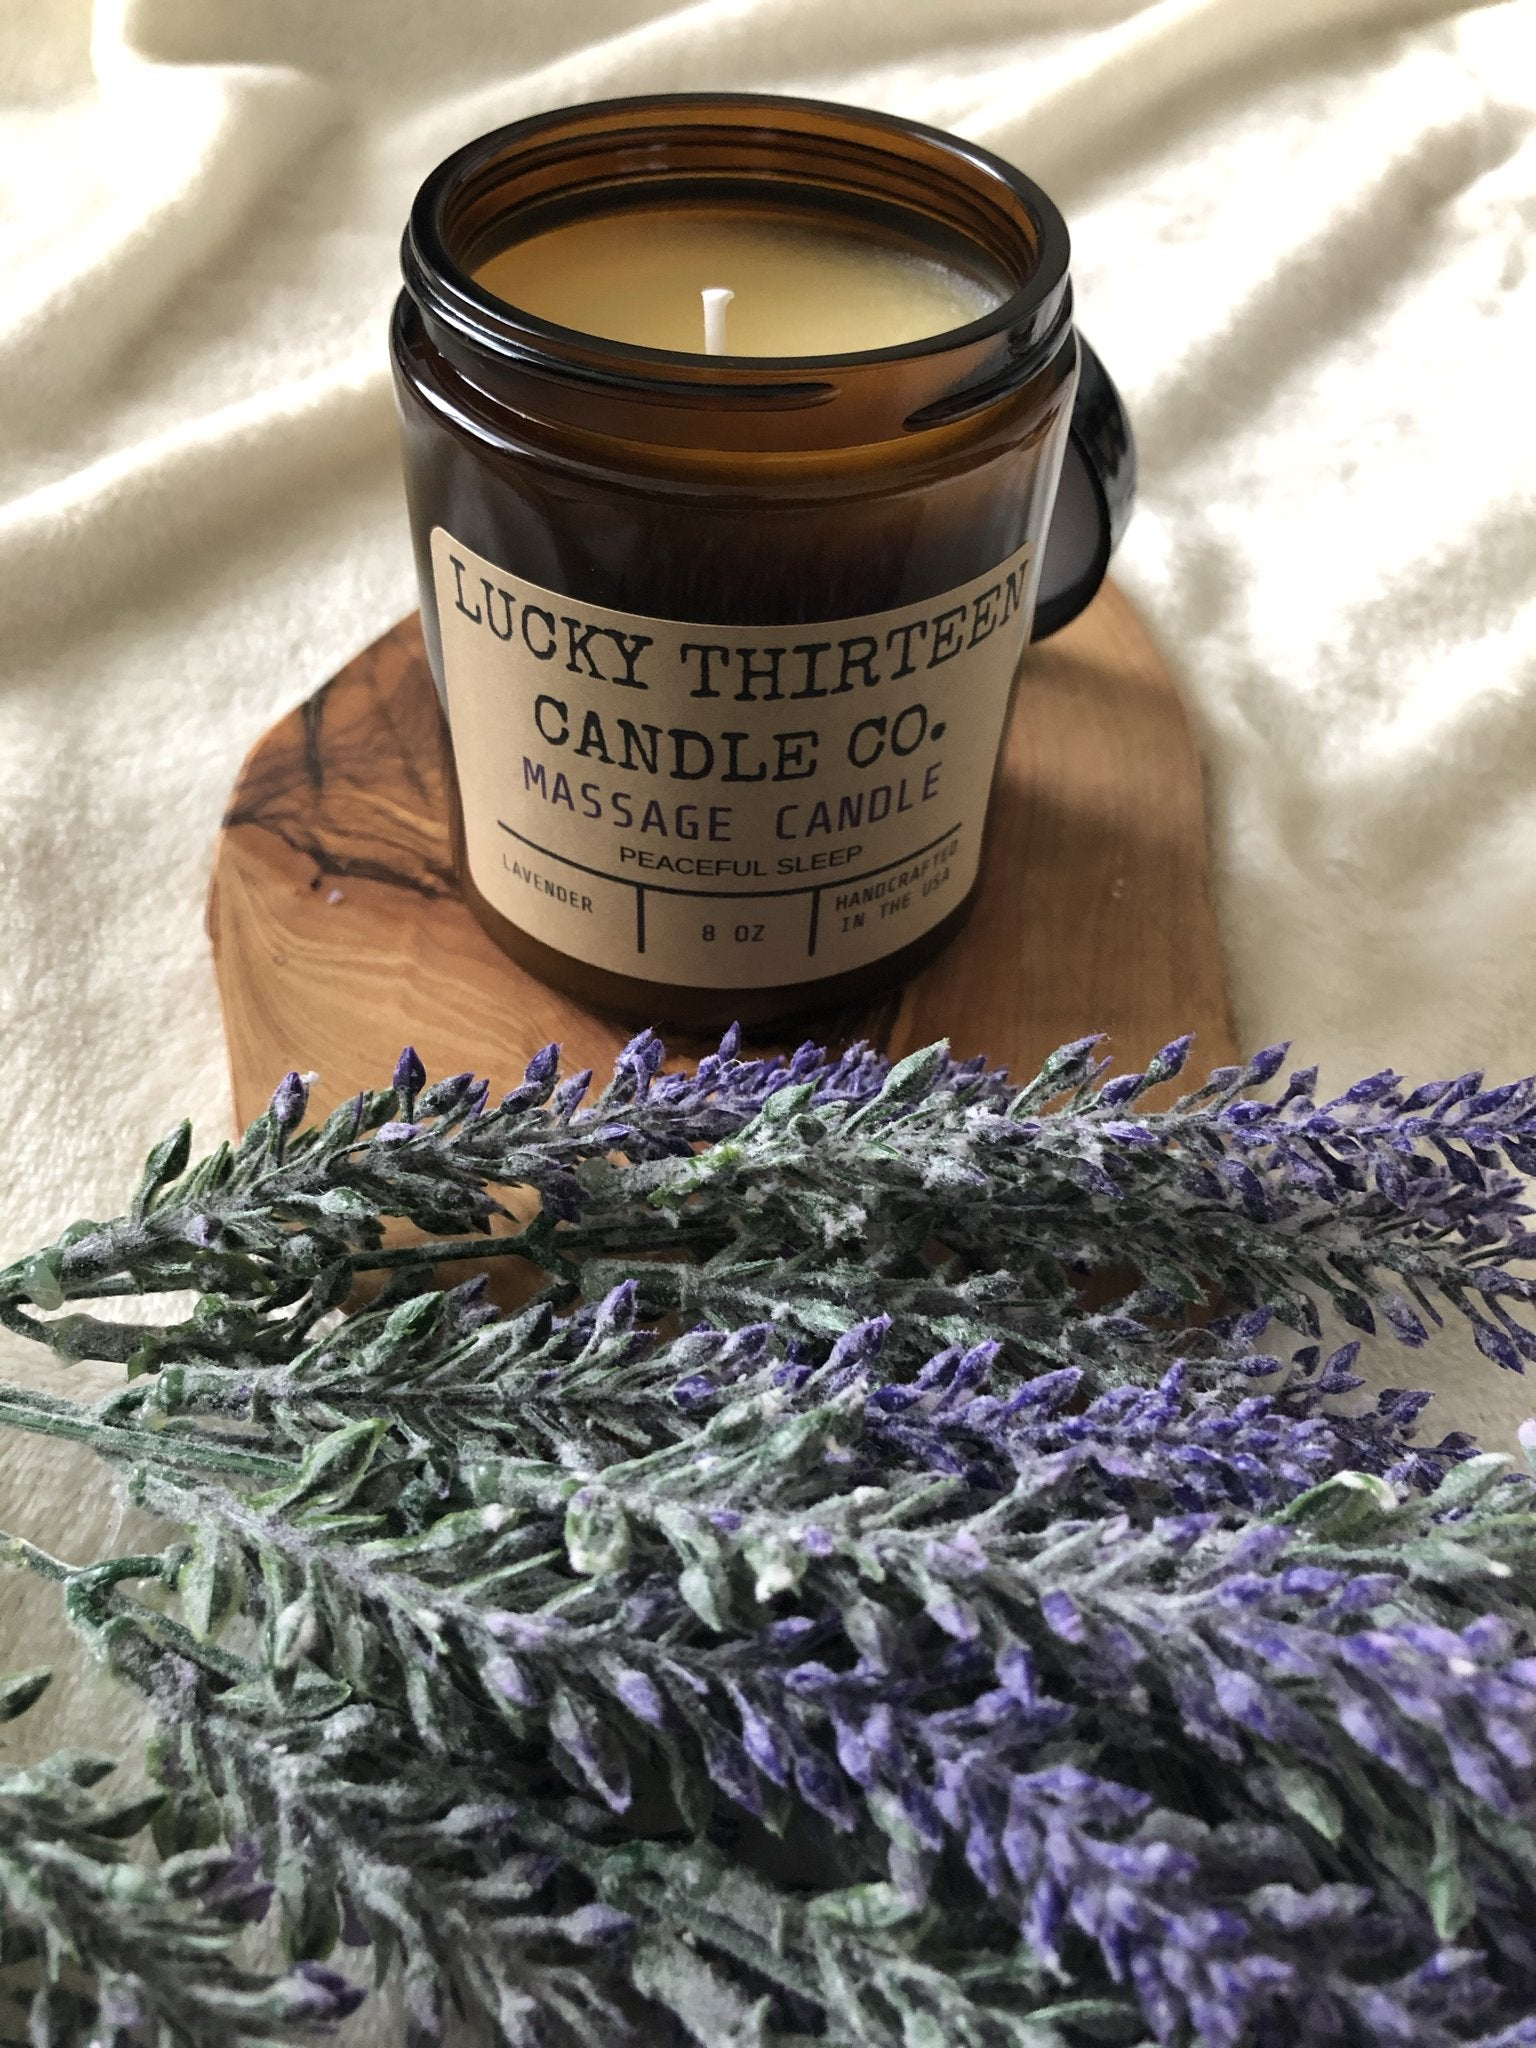 [Peaceful Sleep] Massage Candle